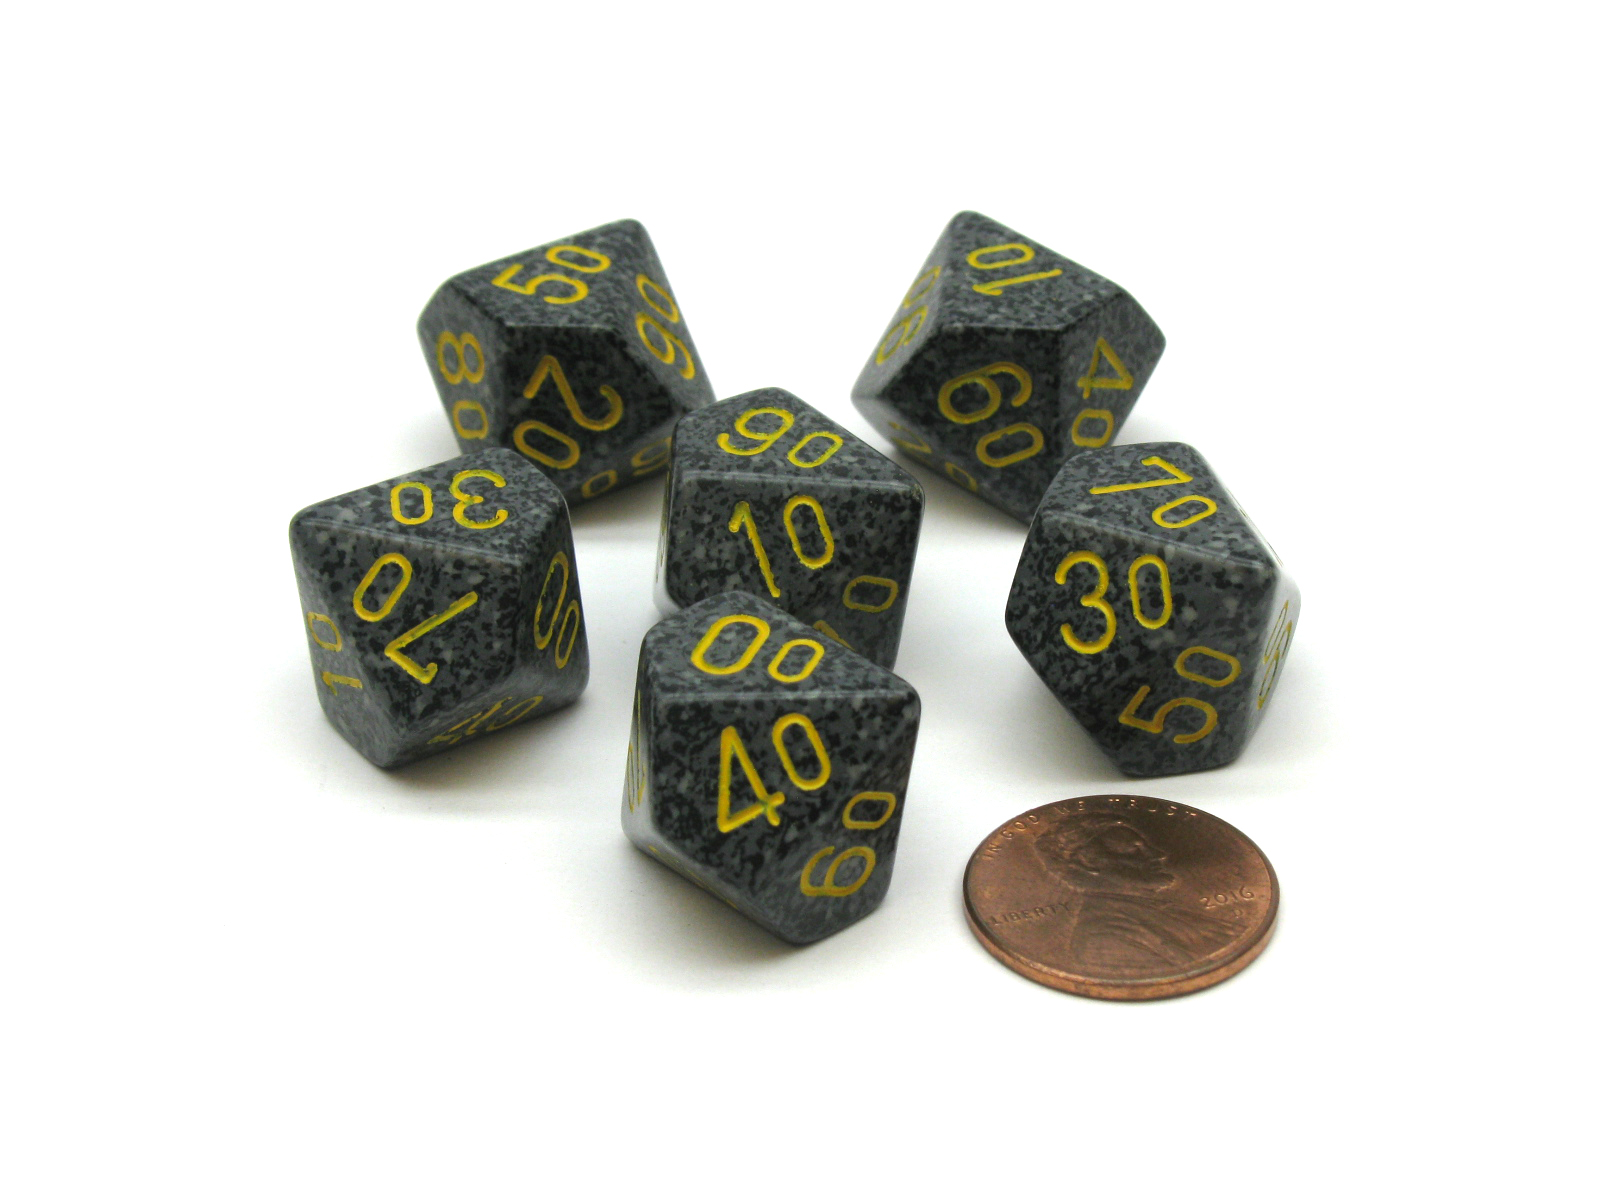 FULL BOX OF 12! URBAN CAMO with YELLOW PIPS CHESSEX 16mm SPECKLED DICE